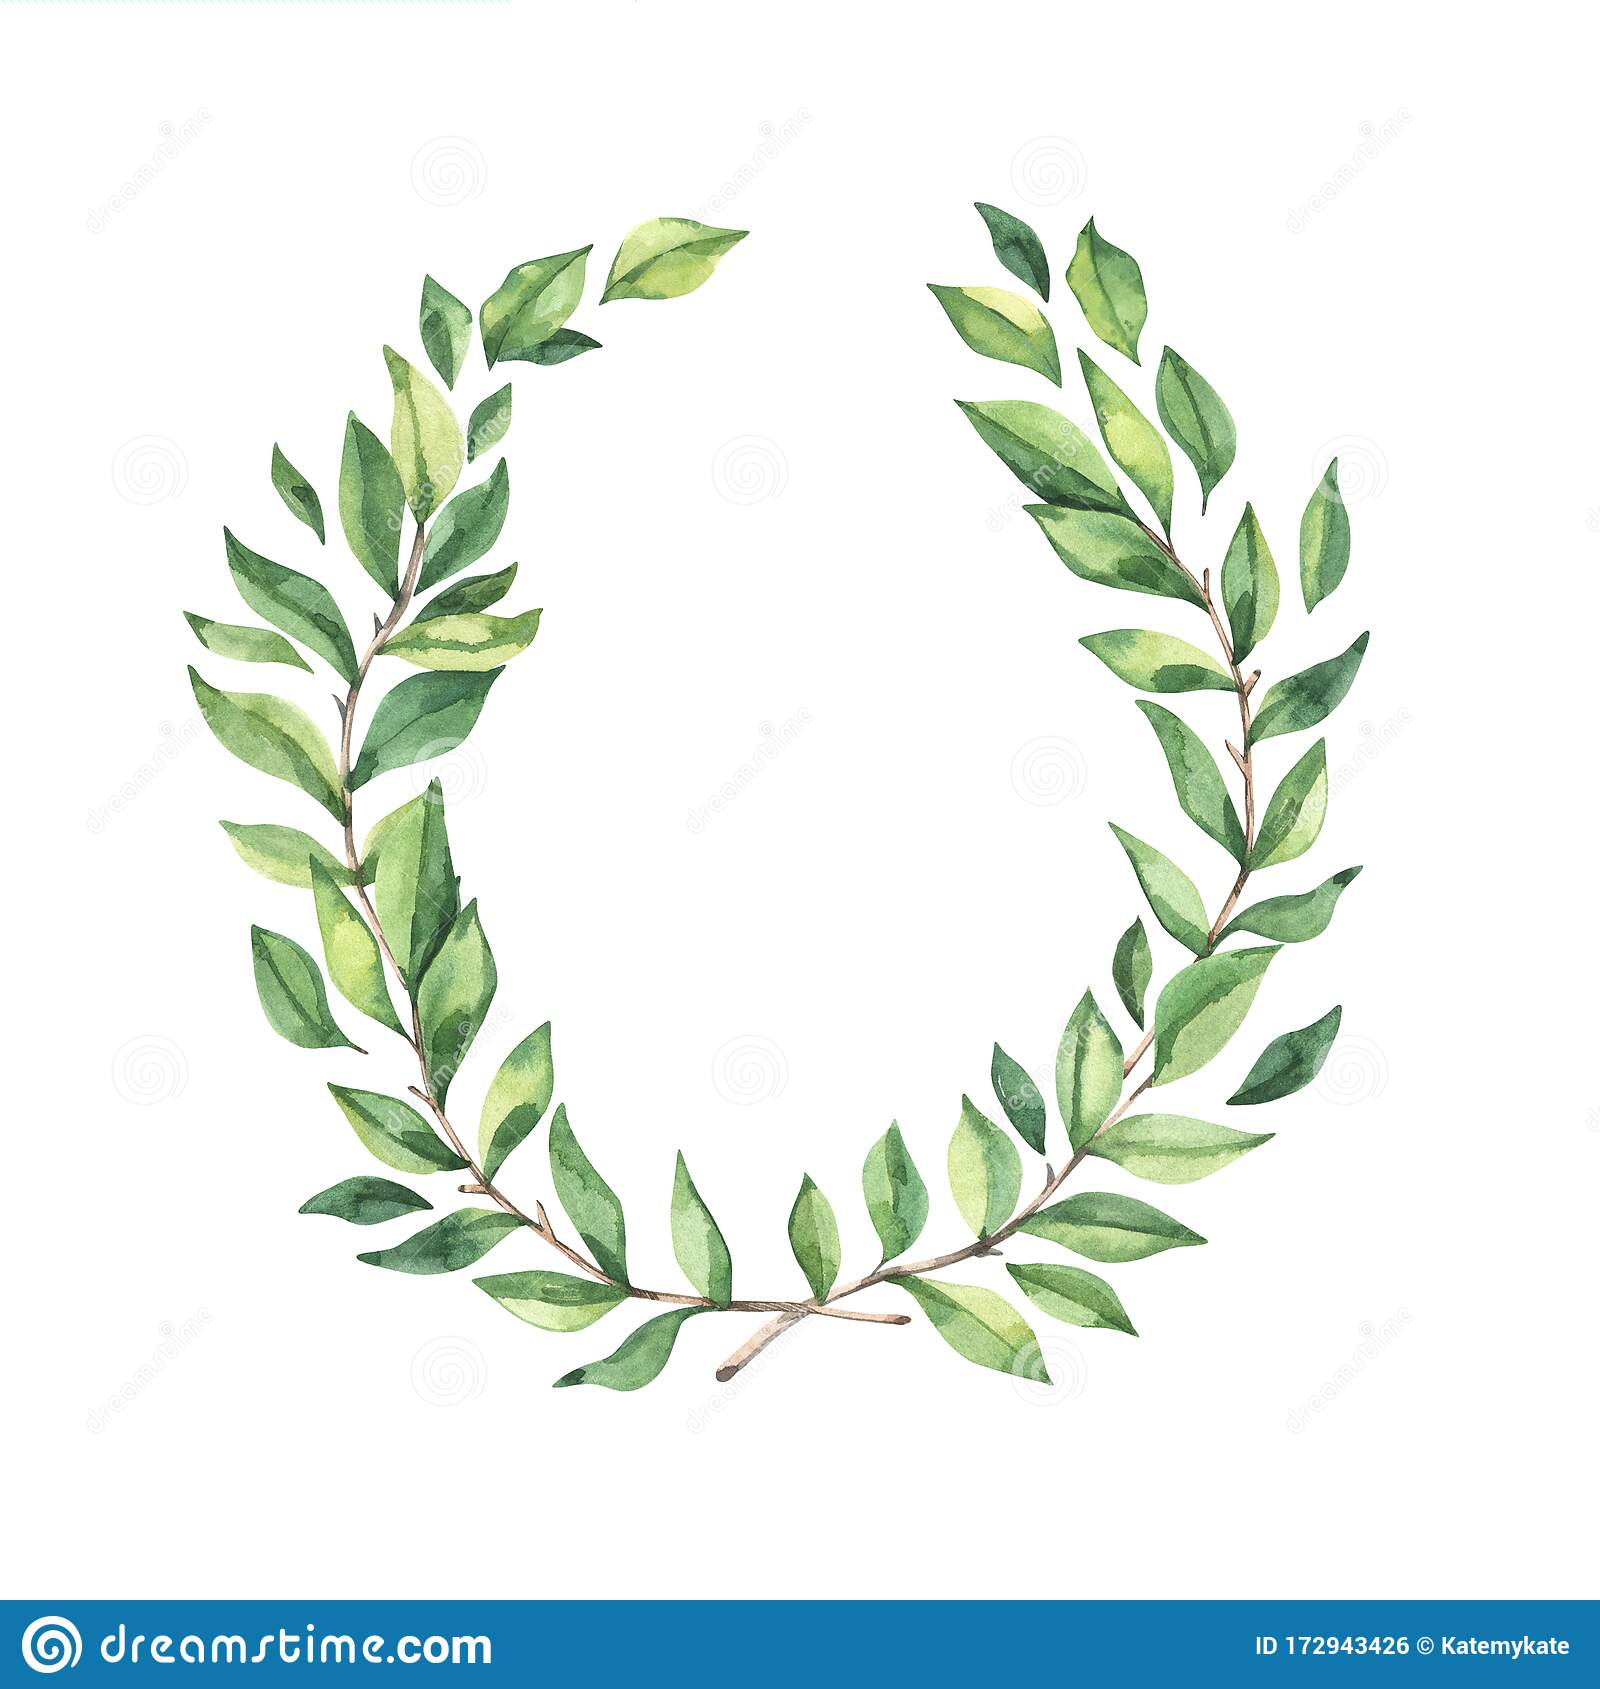 Download Tree Branches With Leaves Png Clipart Tree - Png Format  Transparent Plant Png - 900x900 PNG Download - PNGkit